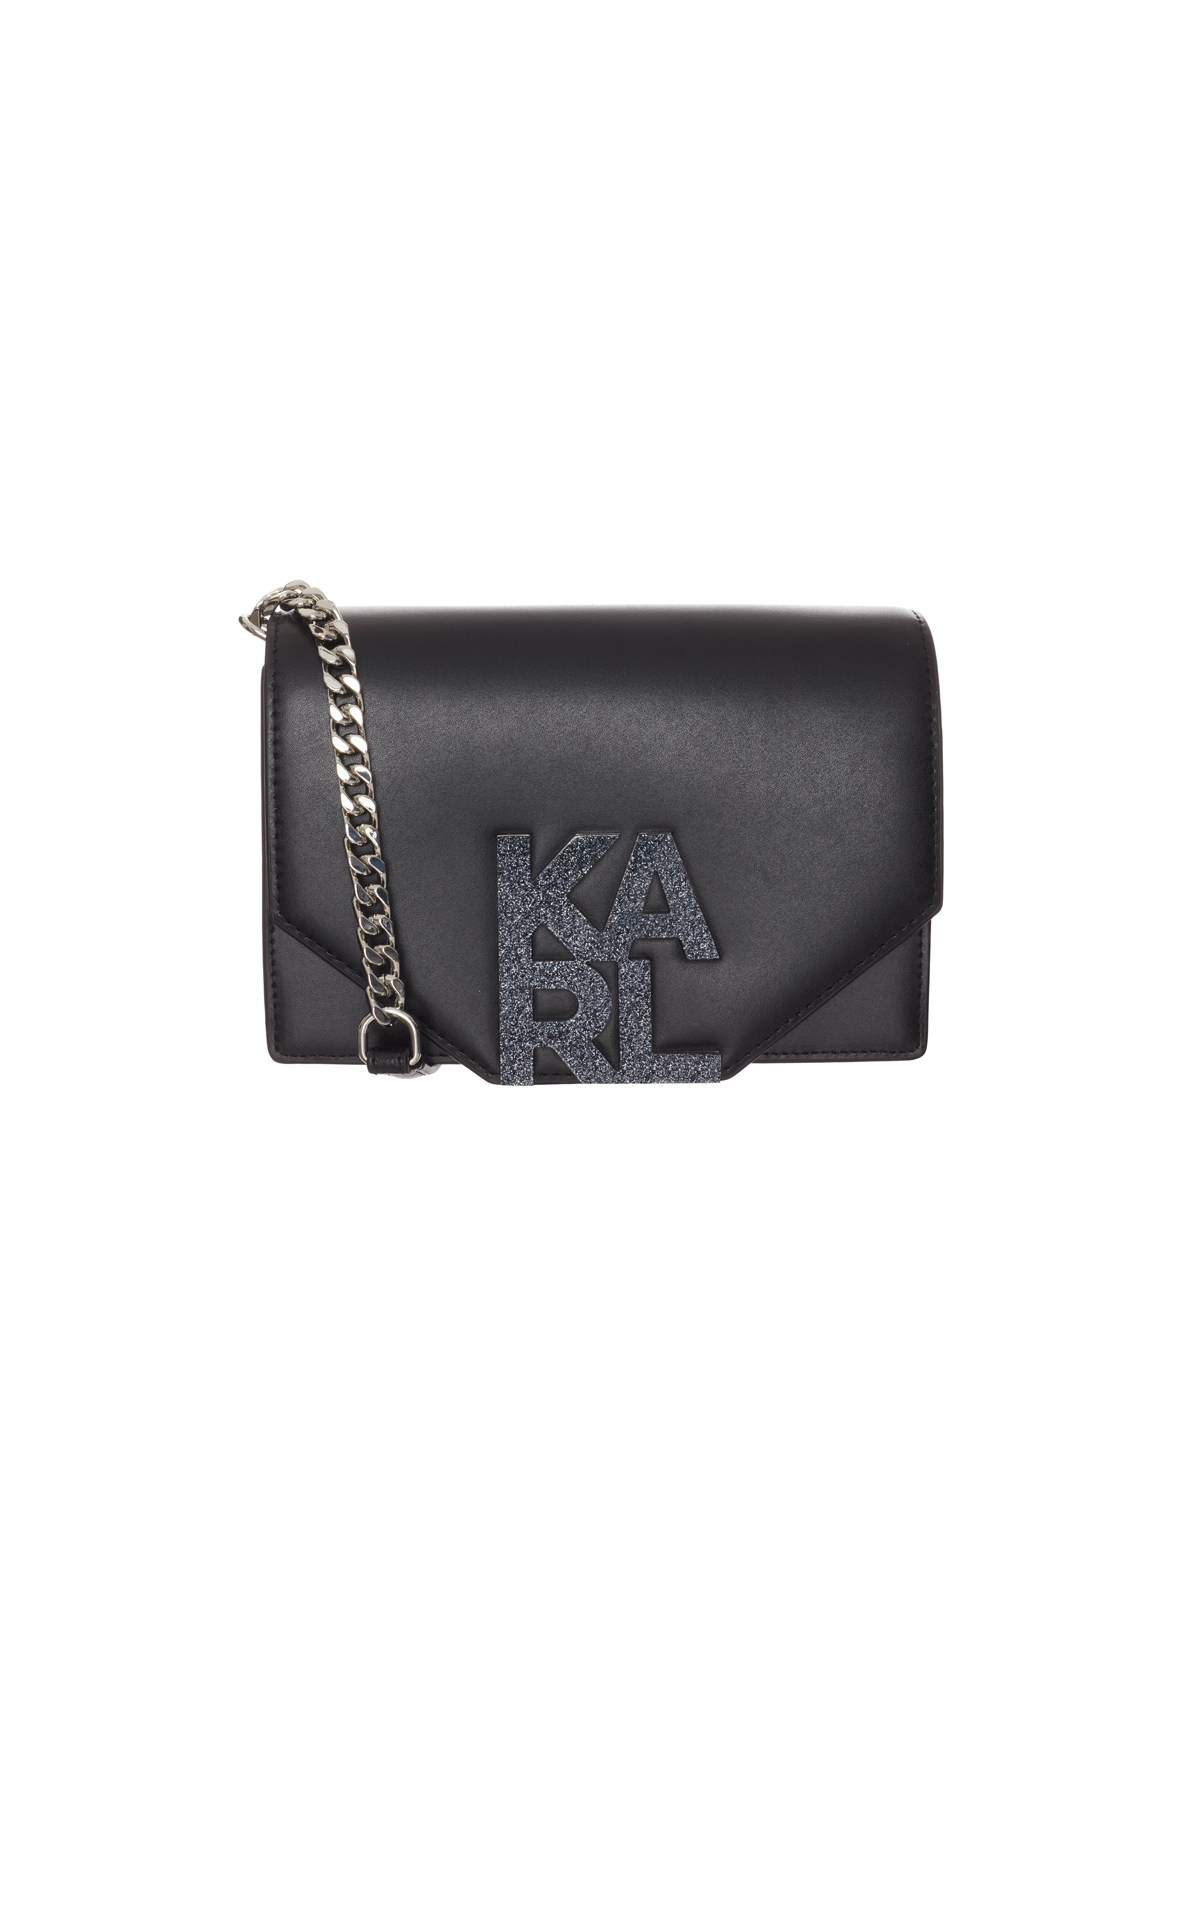 Karl Lagerfeld k/karl logo crossbody at The Bicester Village Shopping Collection